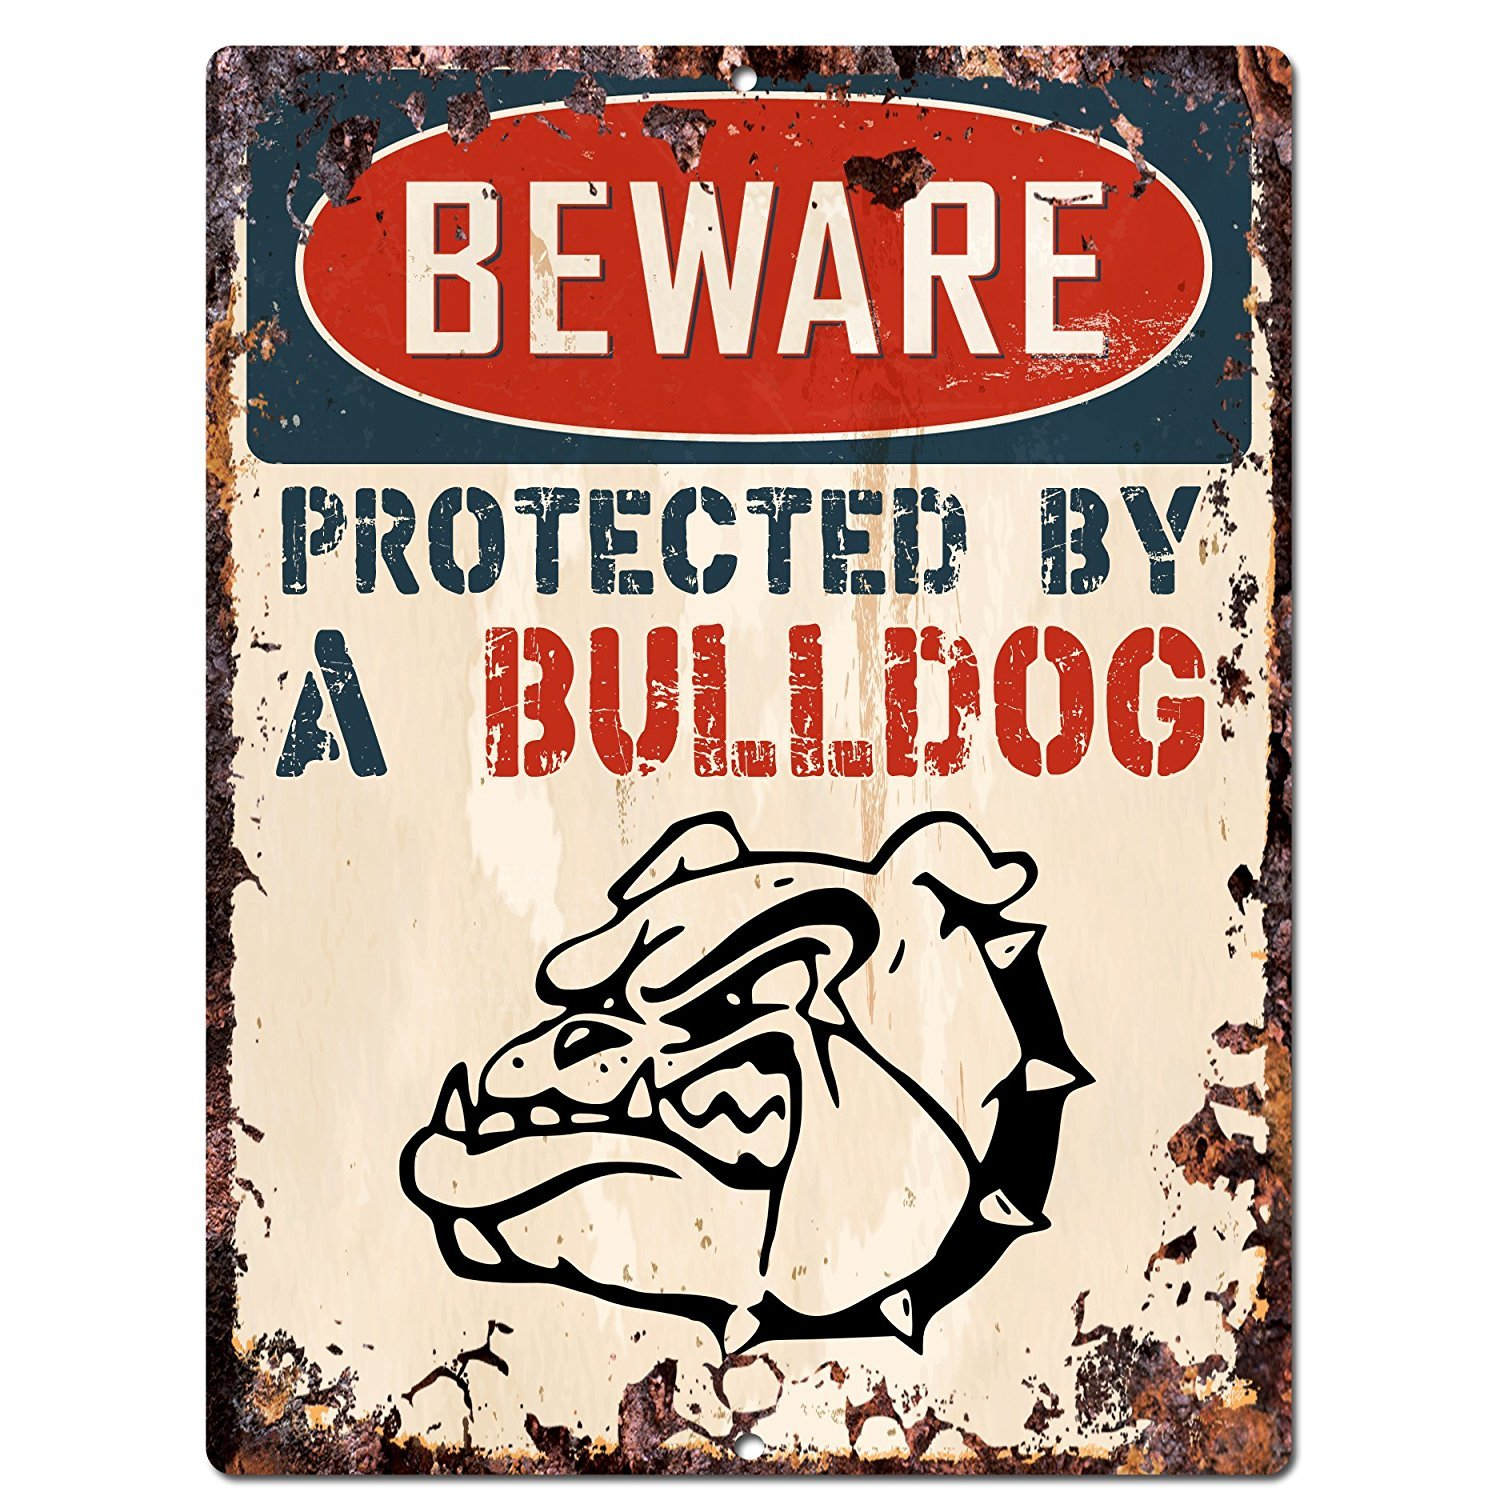 BEWARE PROTECTED BY A BULLDOG Chic Sign Vintage Retro Rustic 9x12 Metal Plate Home Room Door Wall Decoration PP-2092